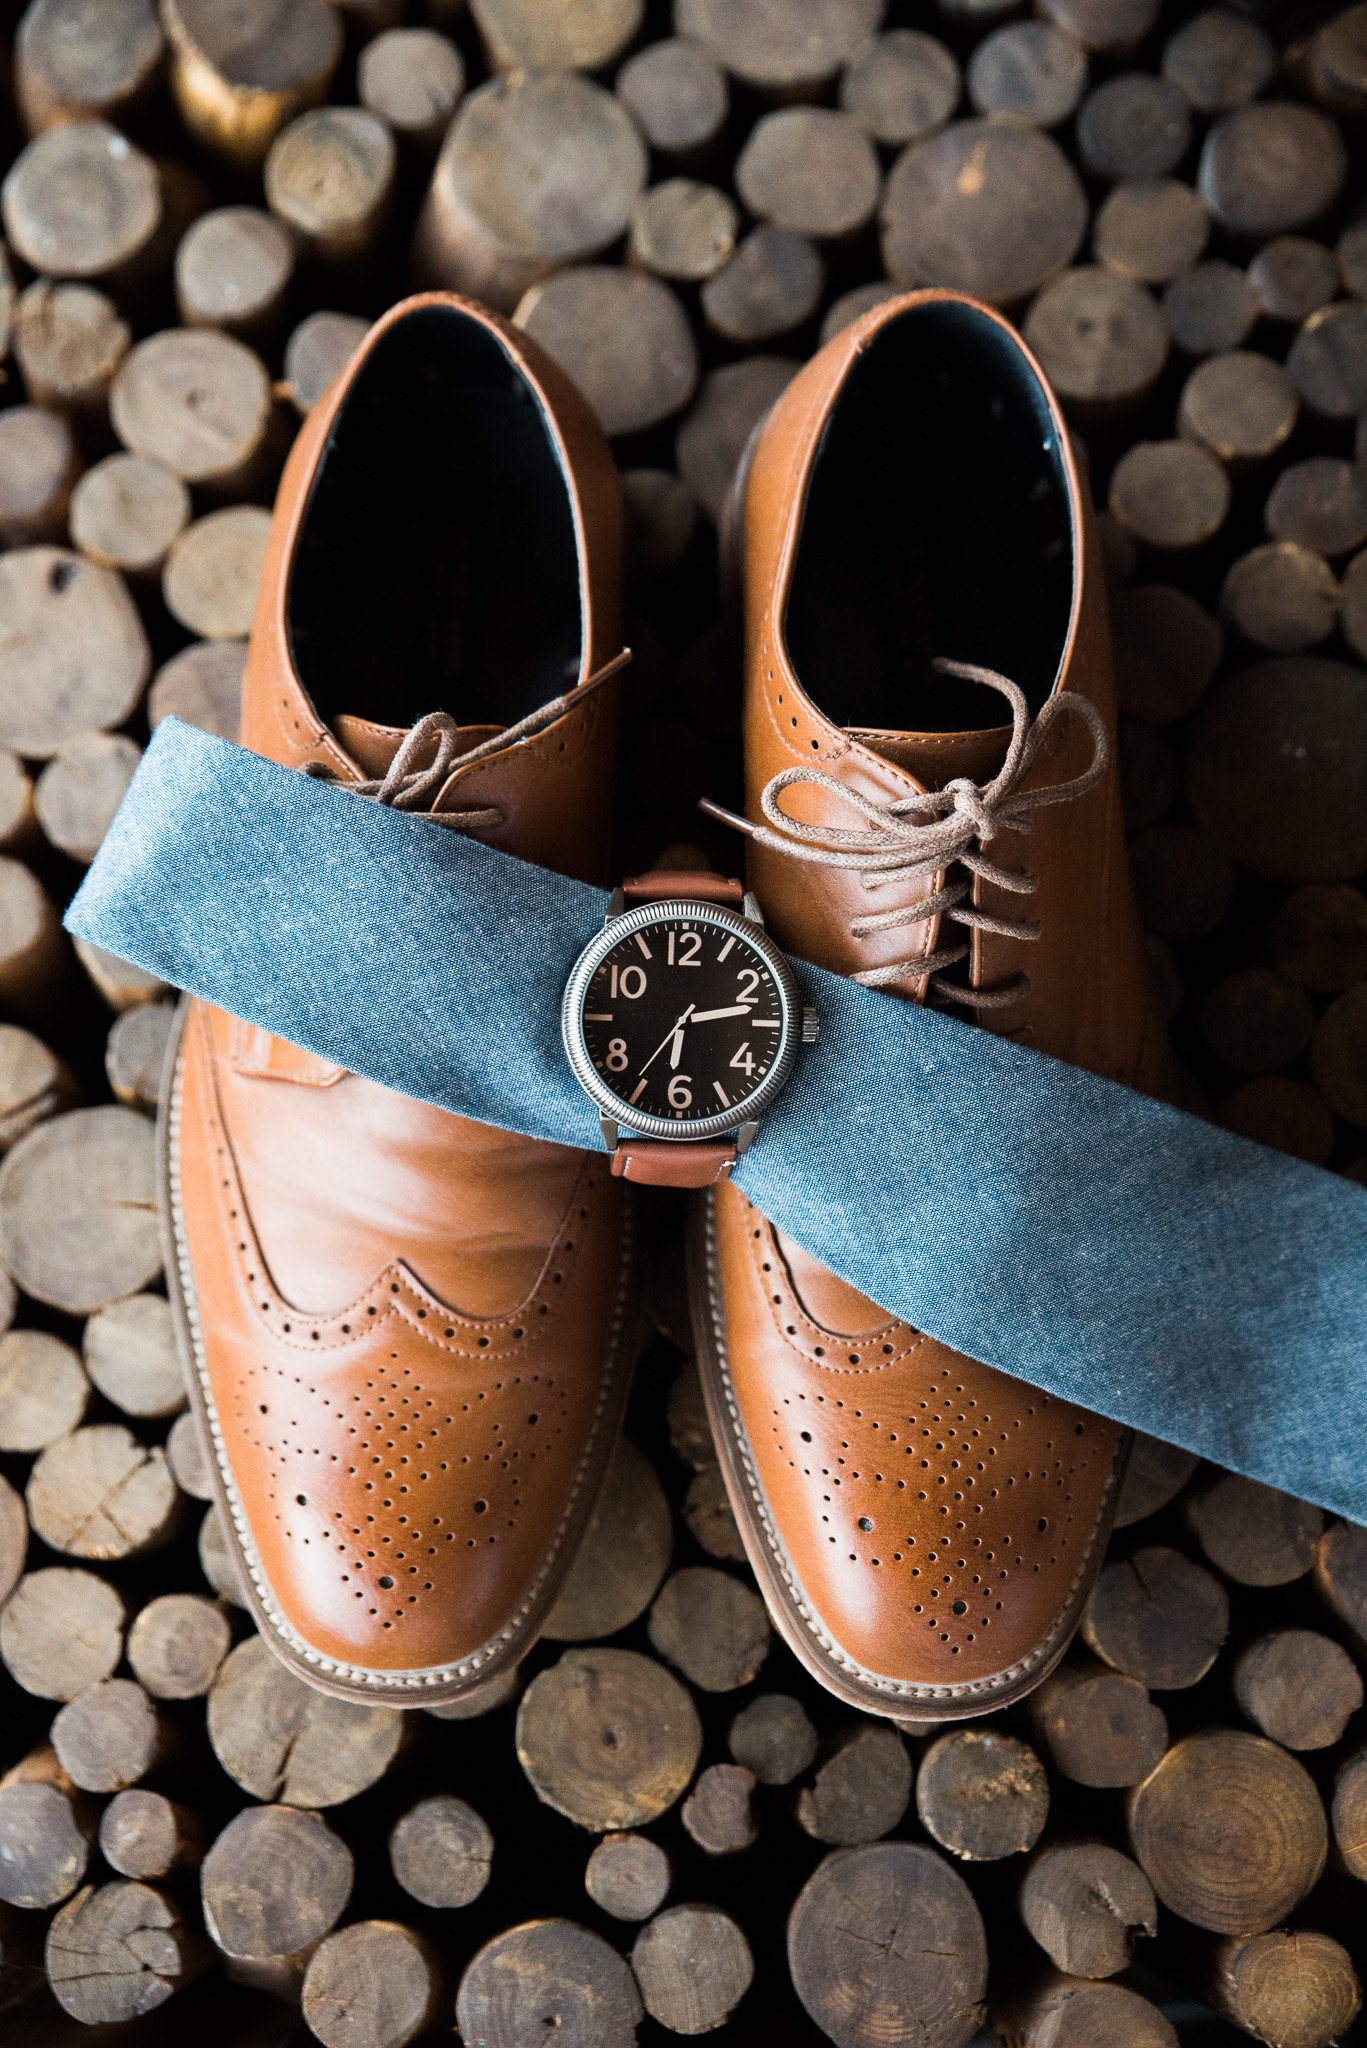 Tucson Kingan Gardens Wedding Photo of Groom Shoes, Tie, and Watch Details | Tucson Wedding Photographer | West End Photography